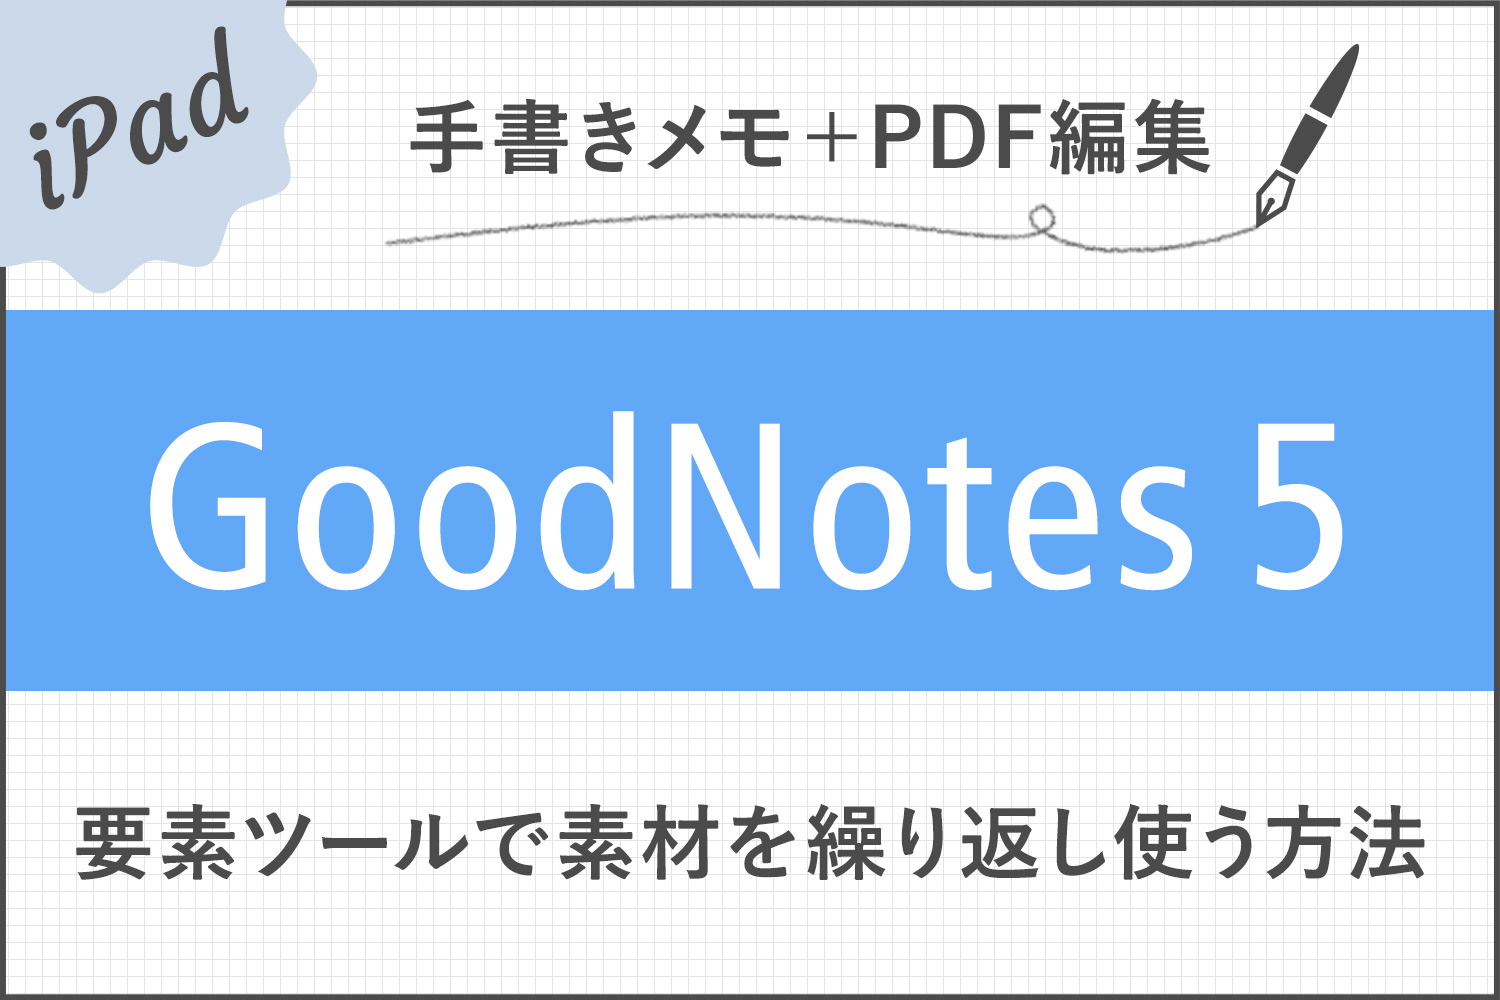 【GoodNotes 5】要素ツール(Elements tool)でイラストや画像素材を繰り返し使う方法